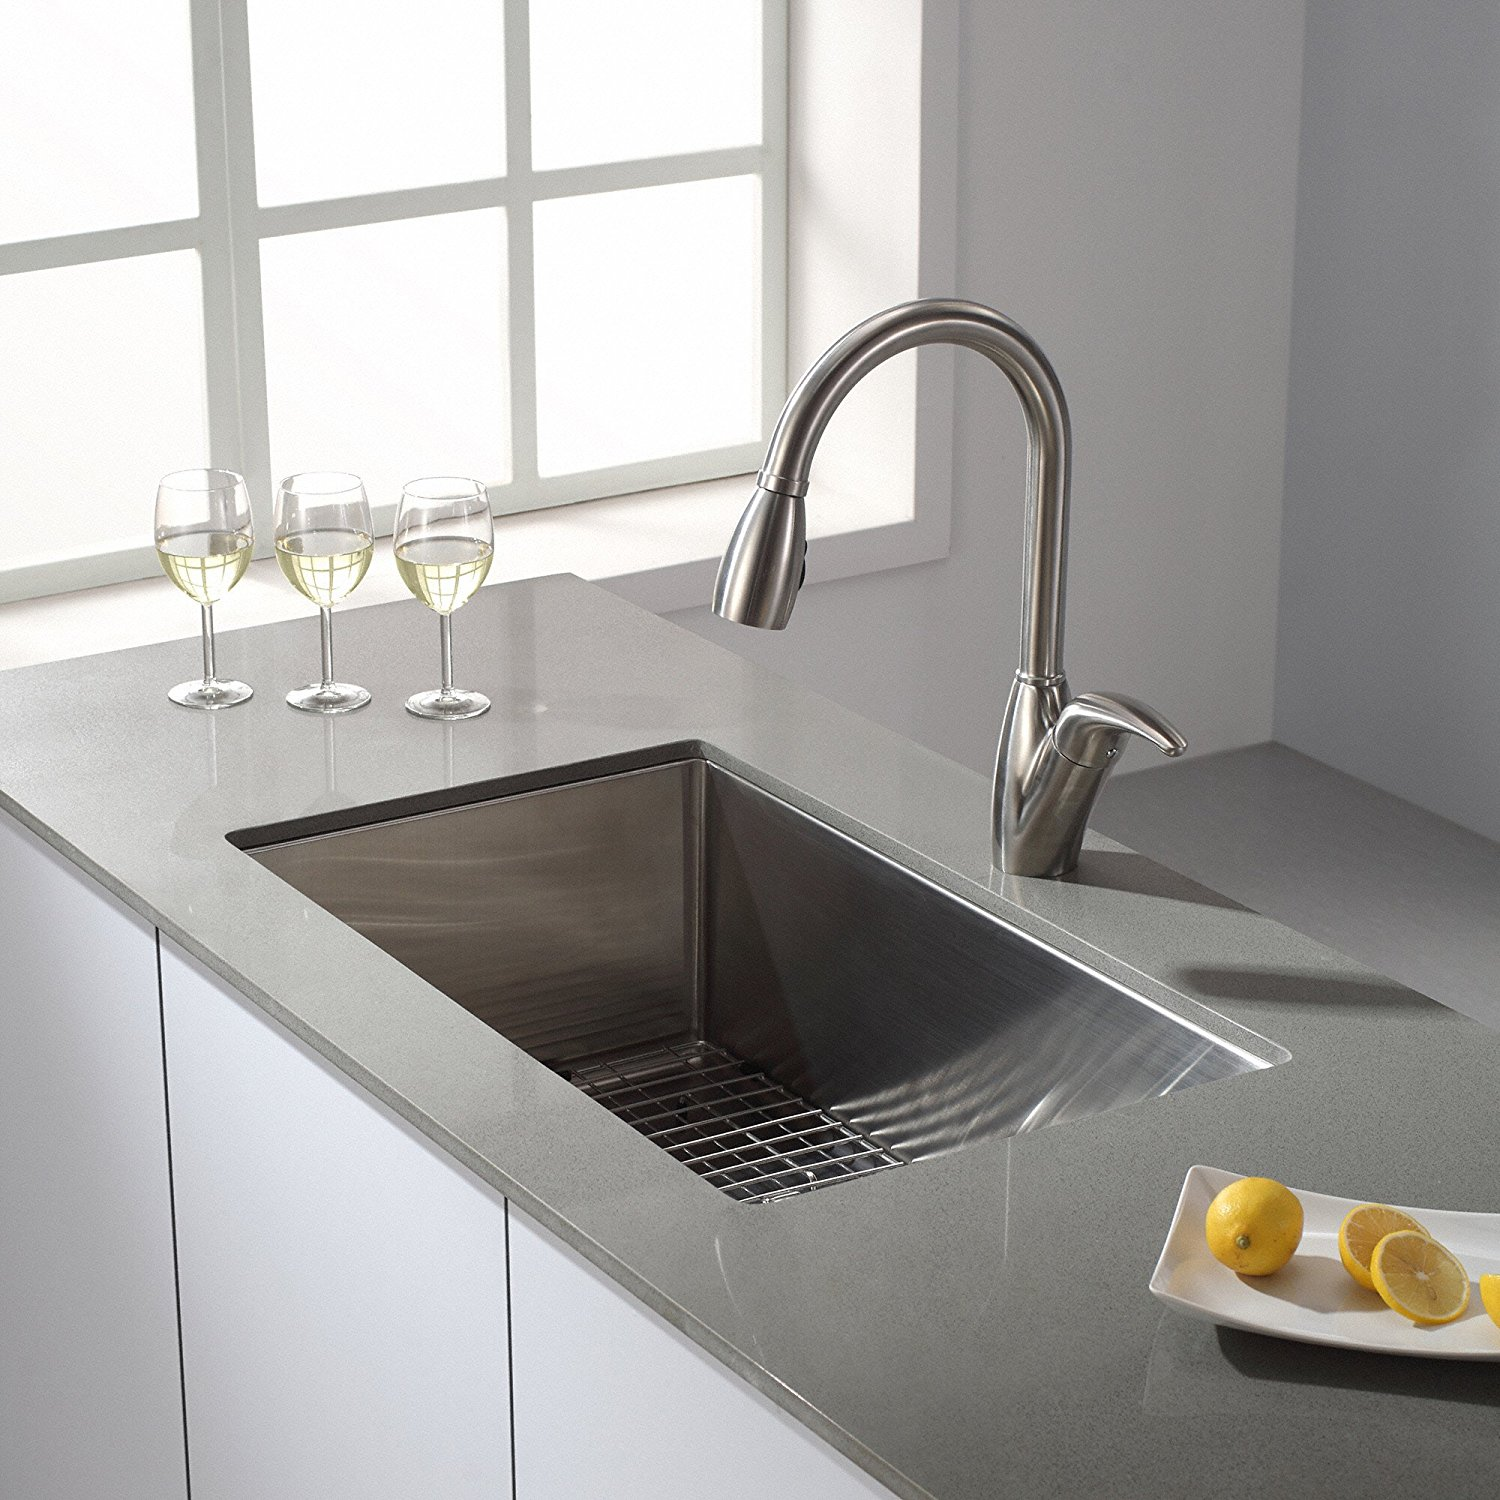 Single Kitchen Sinks Top 10 best single bowl kitchen sinks 2018 reviews editors pick kraus khu 100 30 kitchen sink workwithnaturefo